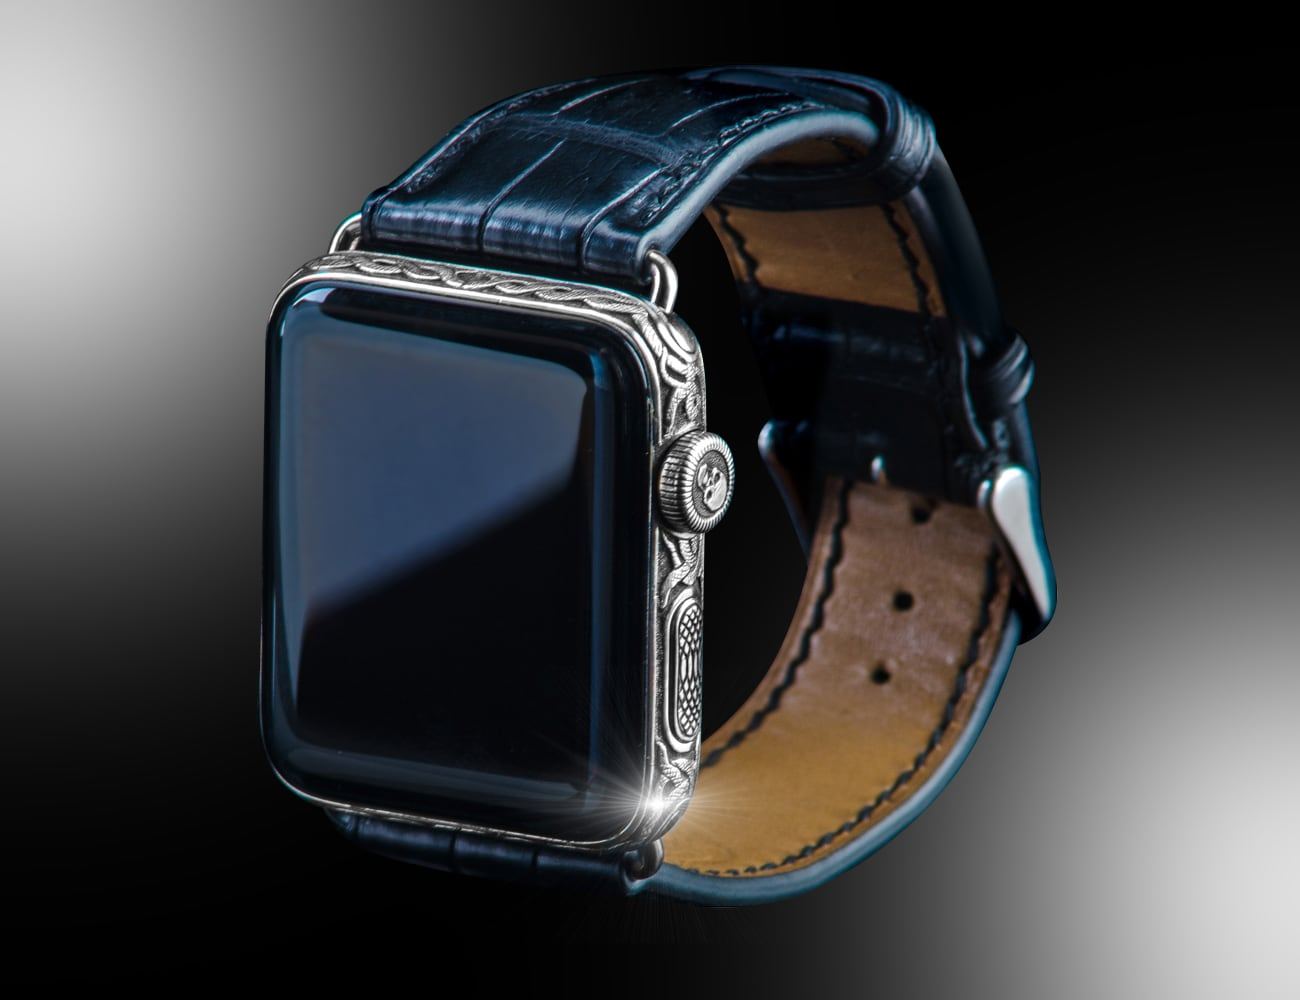 Goldstriker Platinum Black Diamond Apple Watch Series 4 gives your wrist extra embellishment